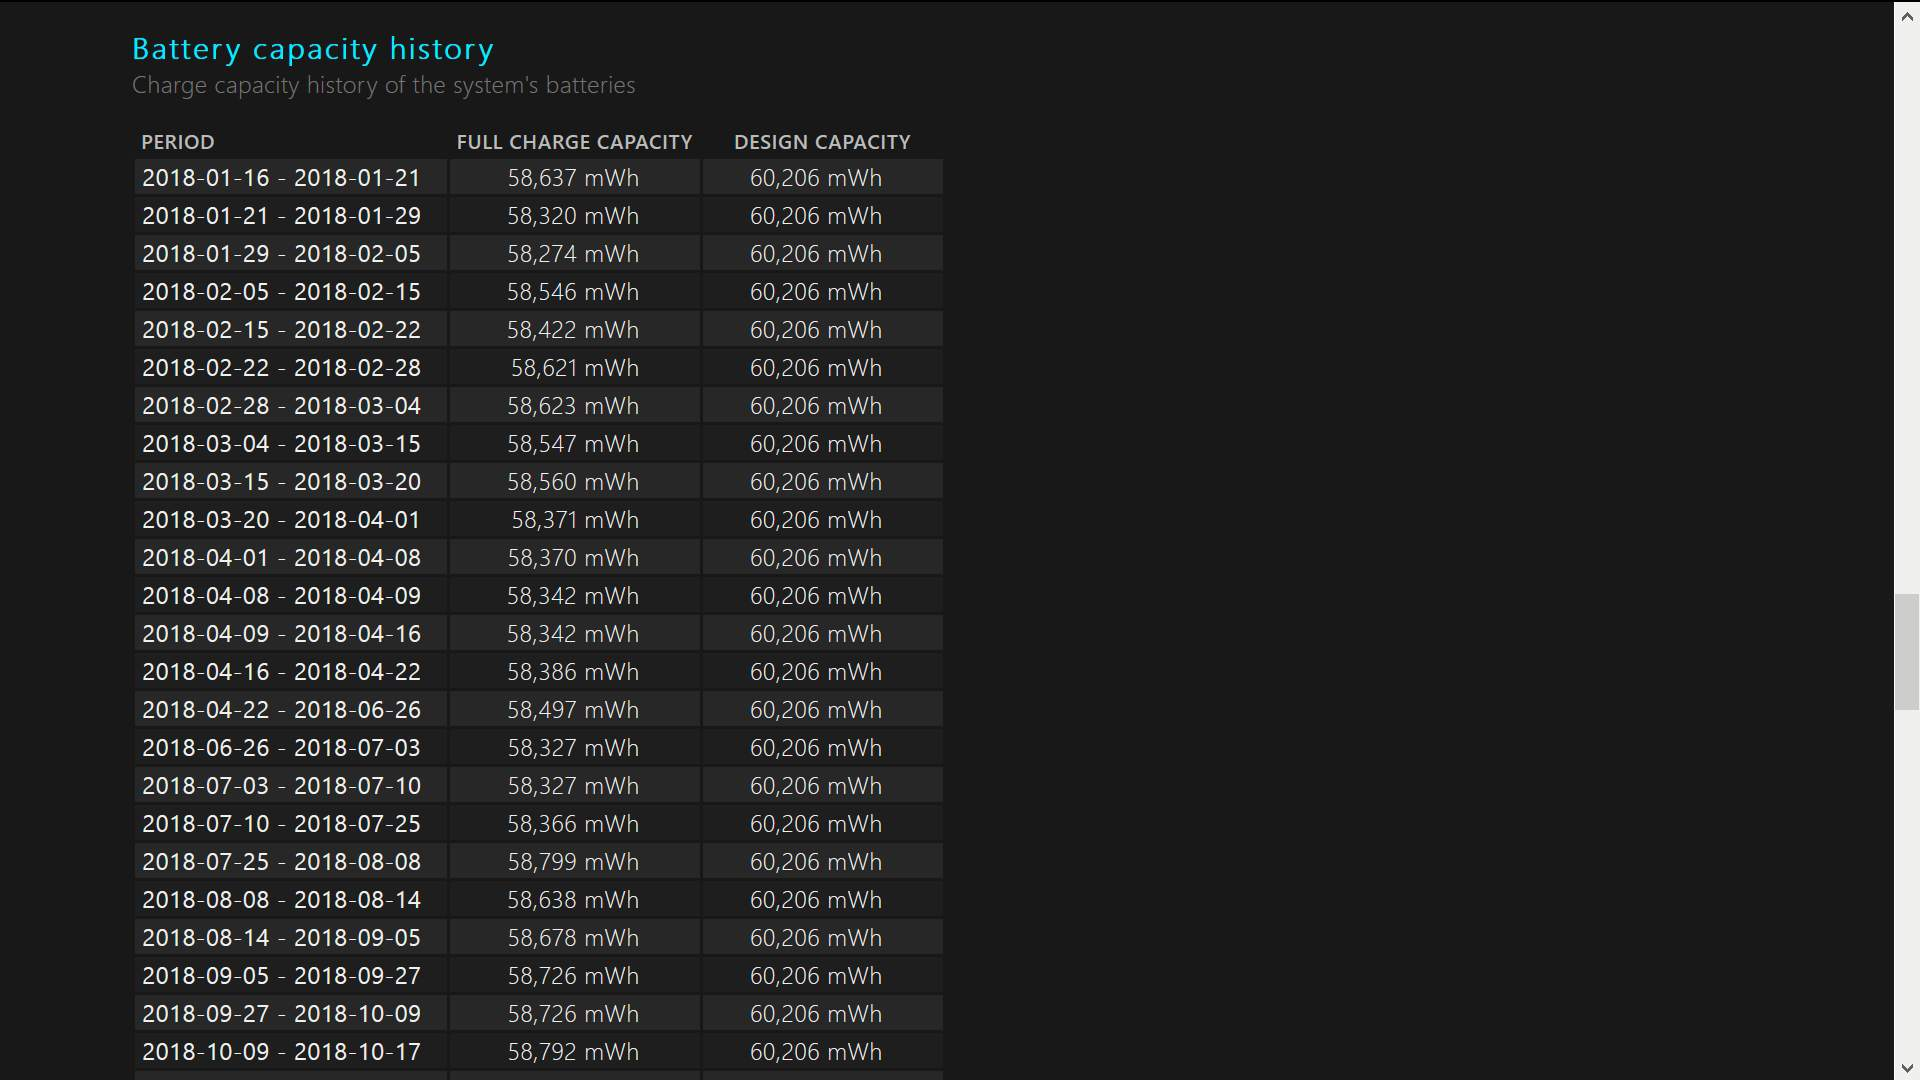 A screenshot of the battery capacity history section of a Windows 10 battery report.